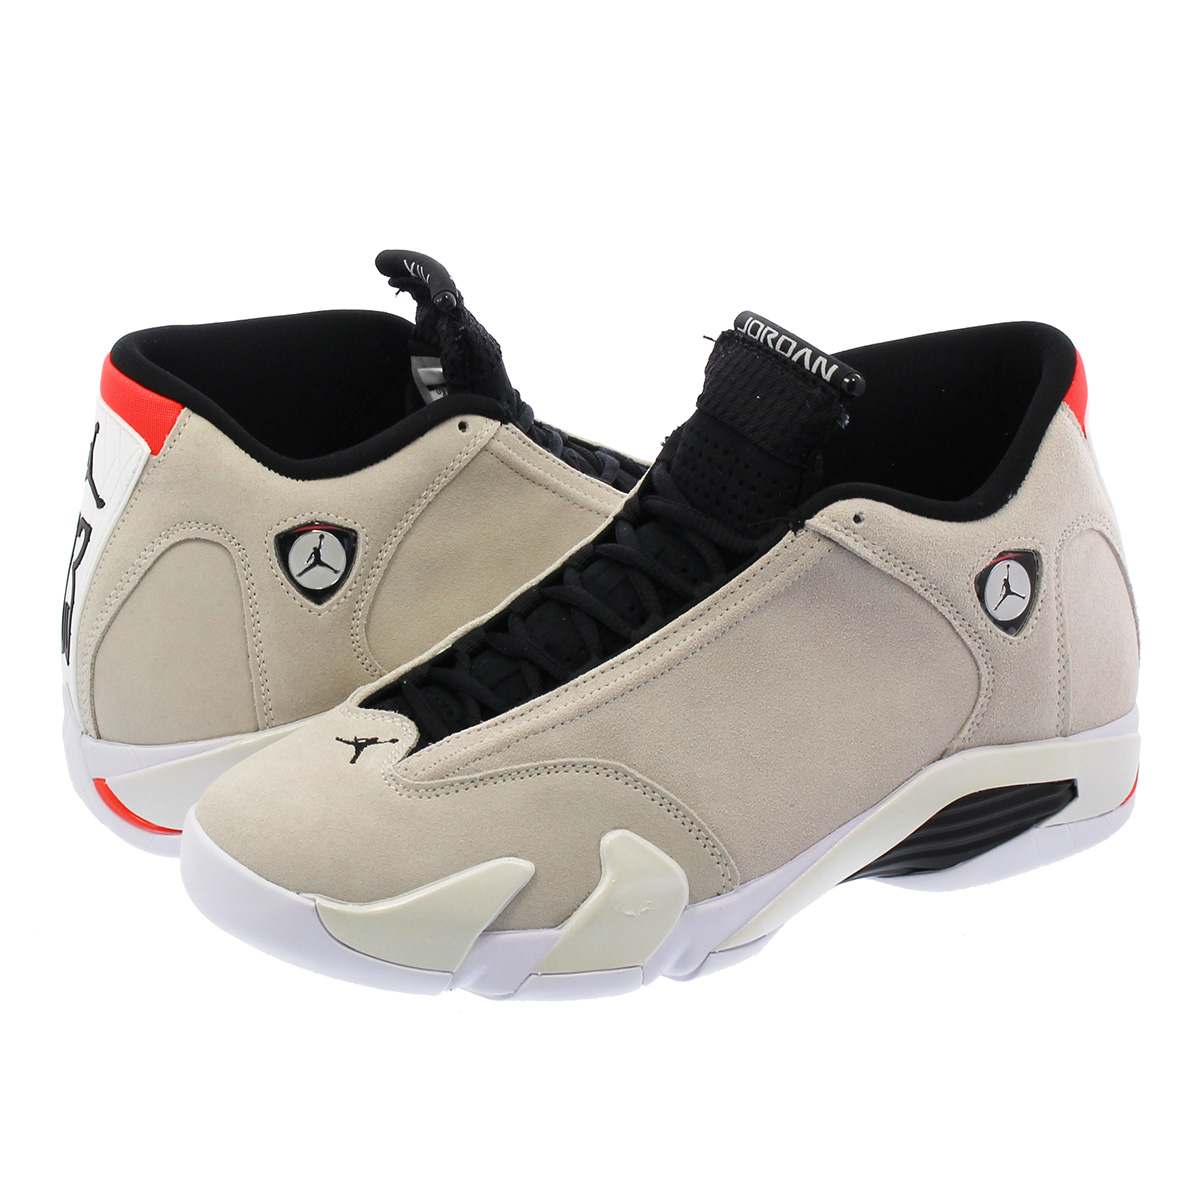 the latest 156f8 e181e NIKE AIR JORDAN 14 RETRO Nike Air Jordan 14 nostalgic DESERT  SAND BLACK WHITE INFRARED 23 487,471-021